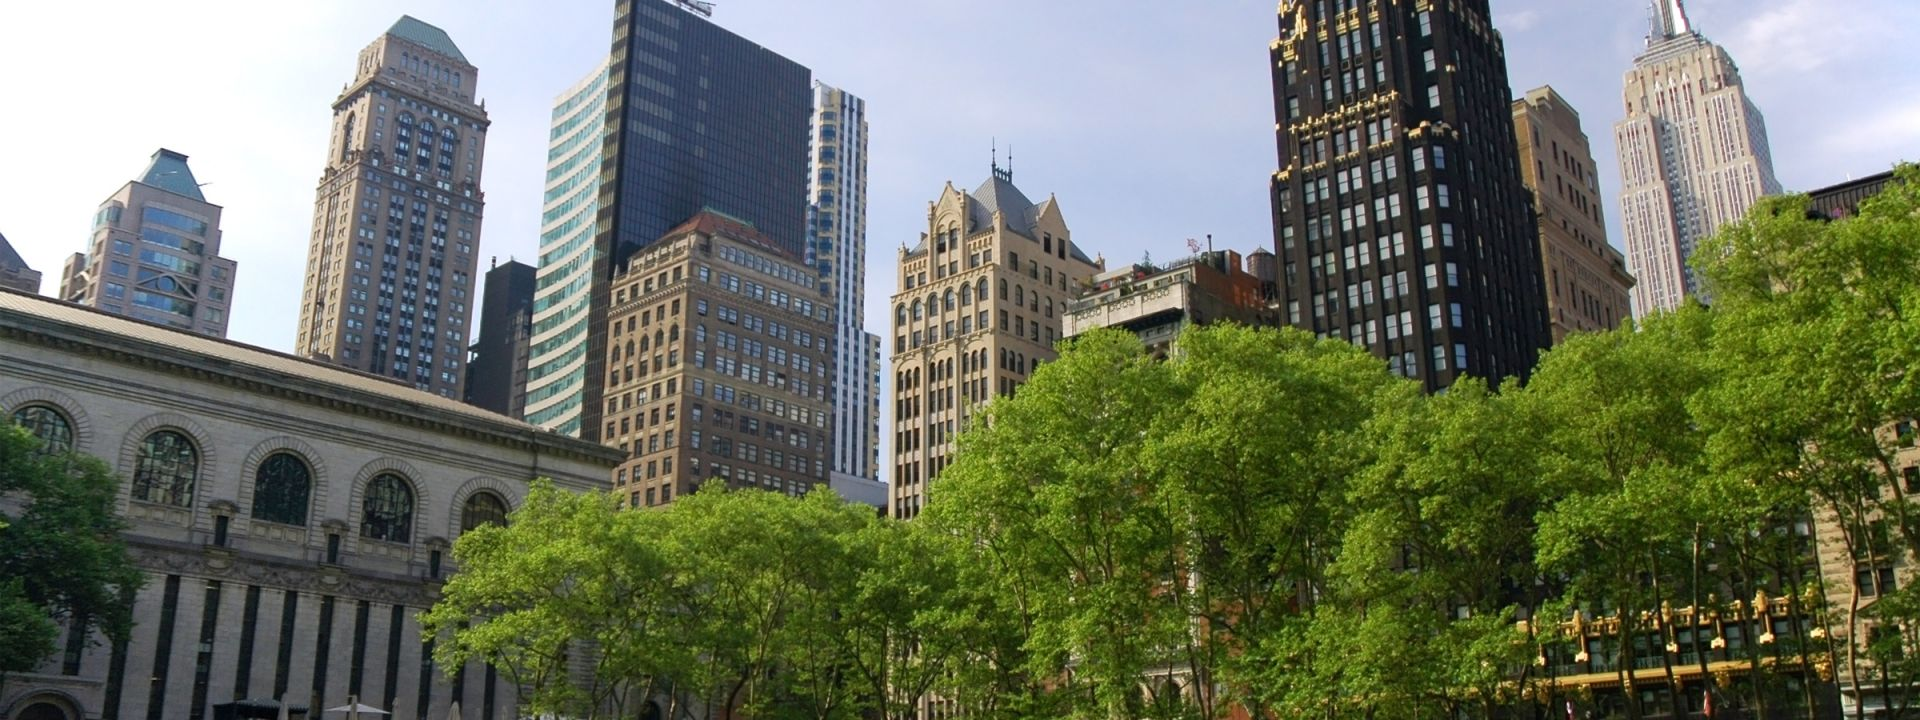 Midtown Manhattan highrise buildings and skyscrapers as seen from Bryant Park